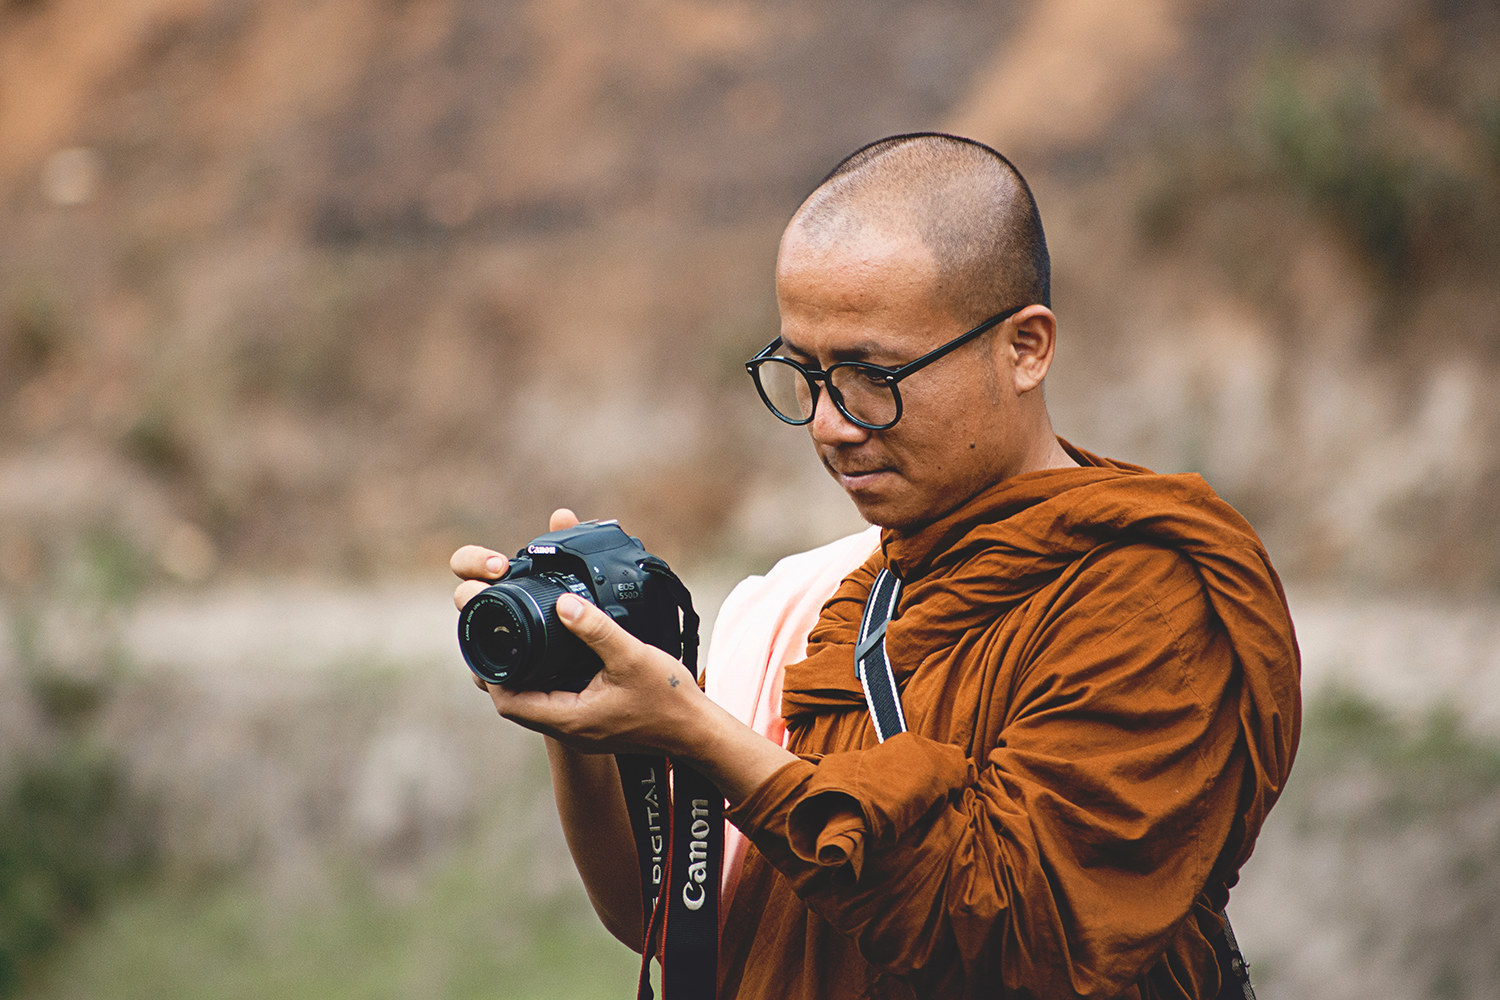 This monk proves that everyone's a photographer